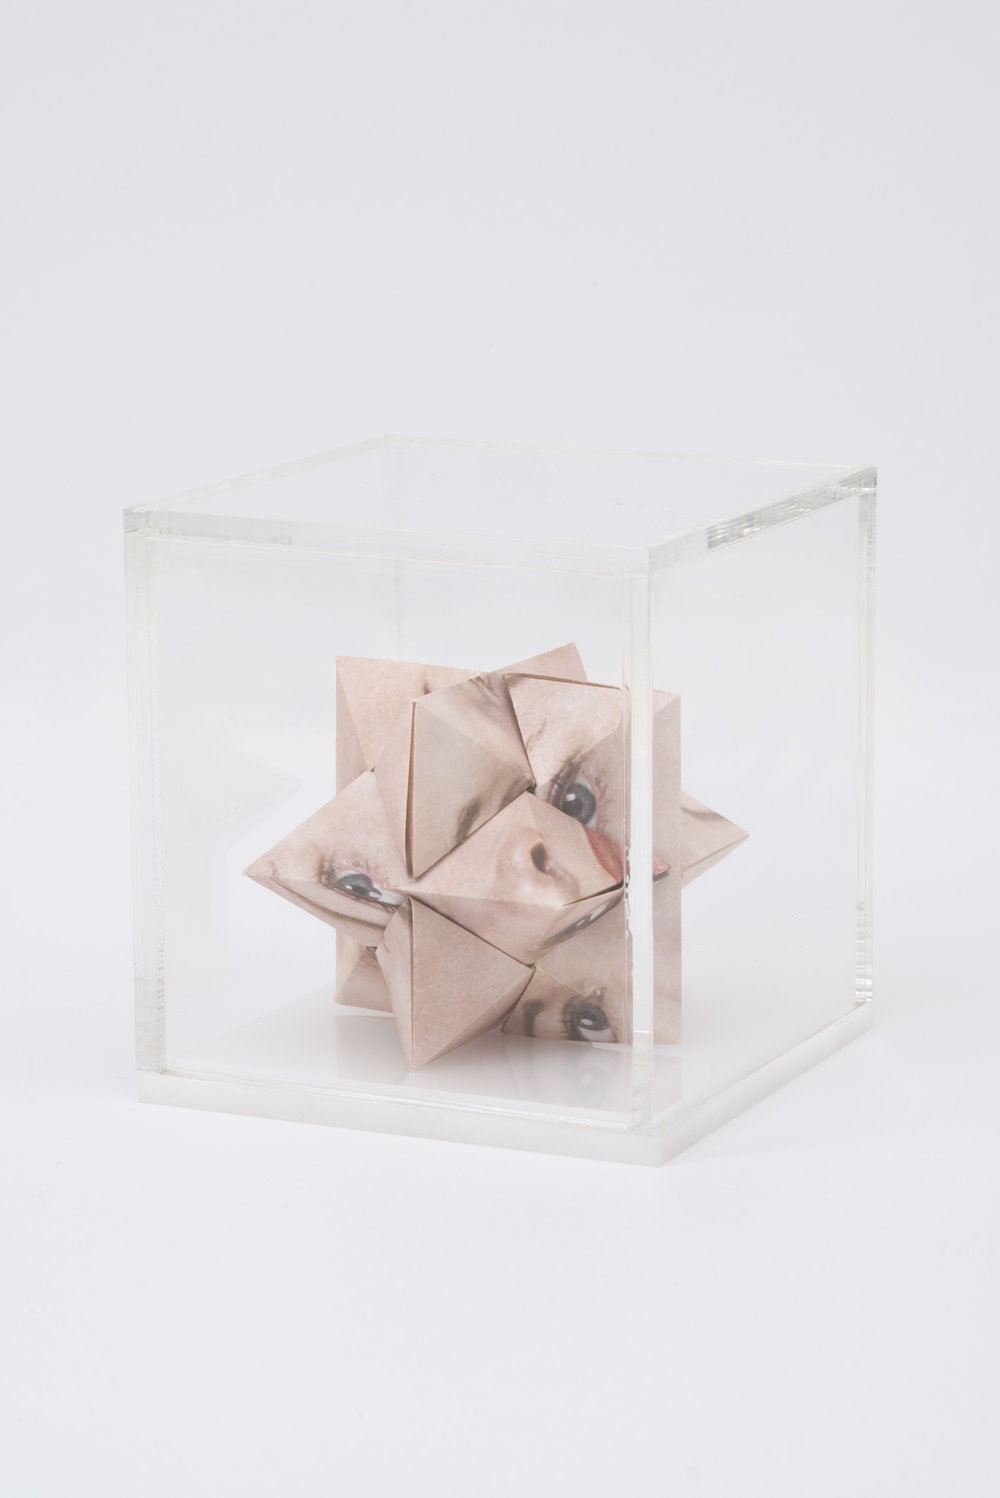 Alma Haser,  Prototype No. 26 (Carla) , 2016  Digital pigment print with folded digital pigment print sculpture, plexiglass box, 12 x 12 x 12 cm (approx. 5 x 5 x 5 in), edition of 5   Inquire